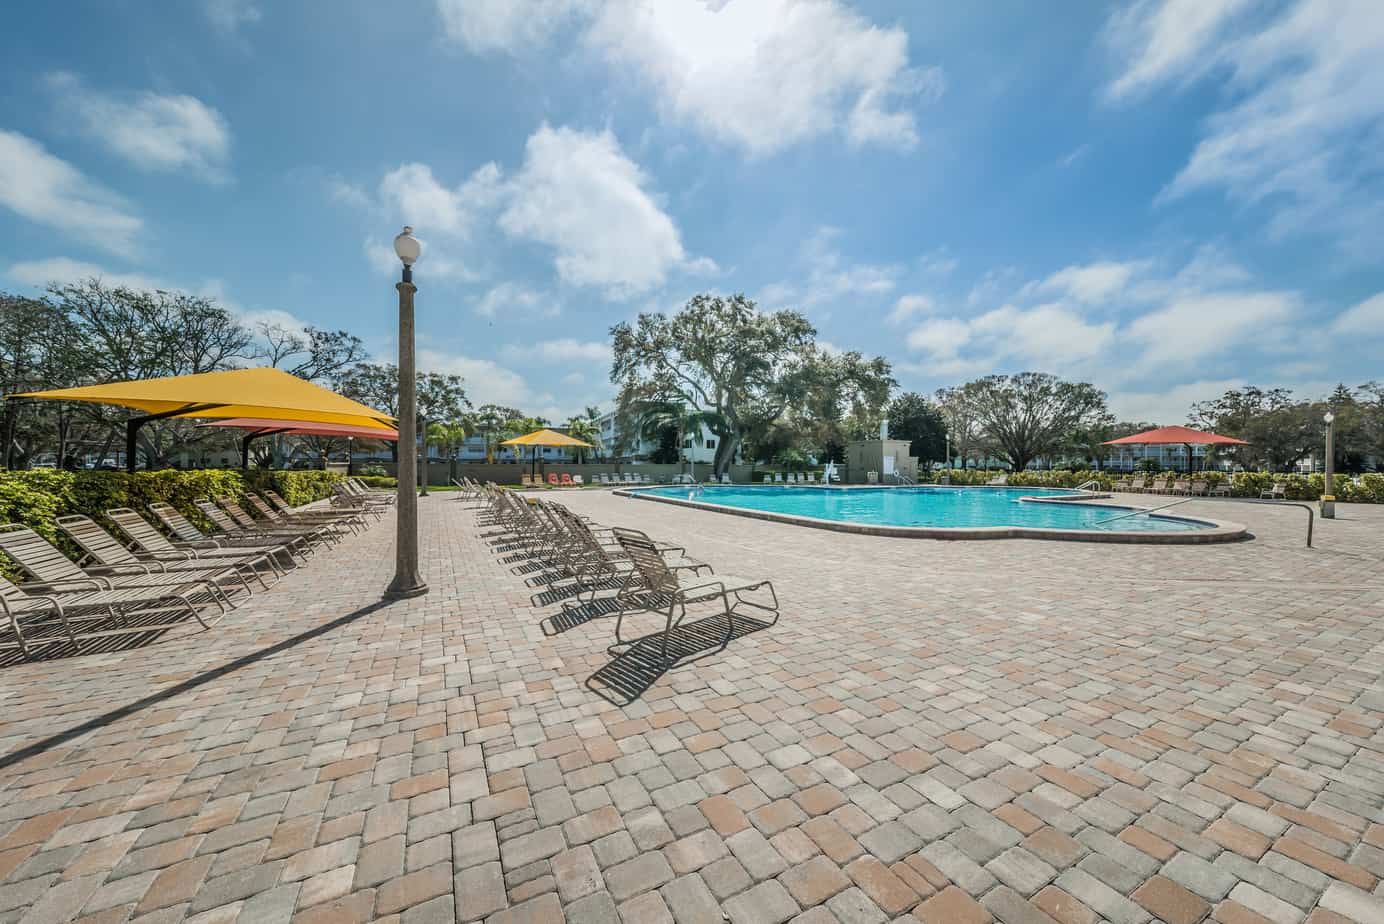 28-2285-Israeli-Dr-#17-Clearwater-Fl-33763-Patio and Pool